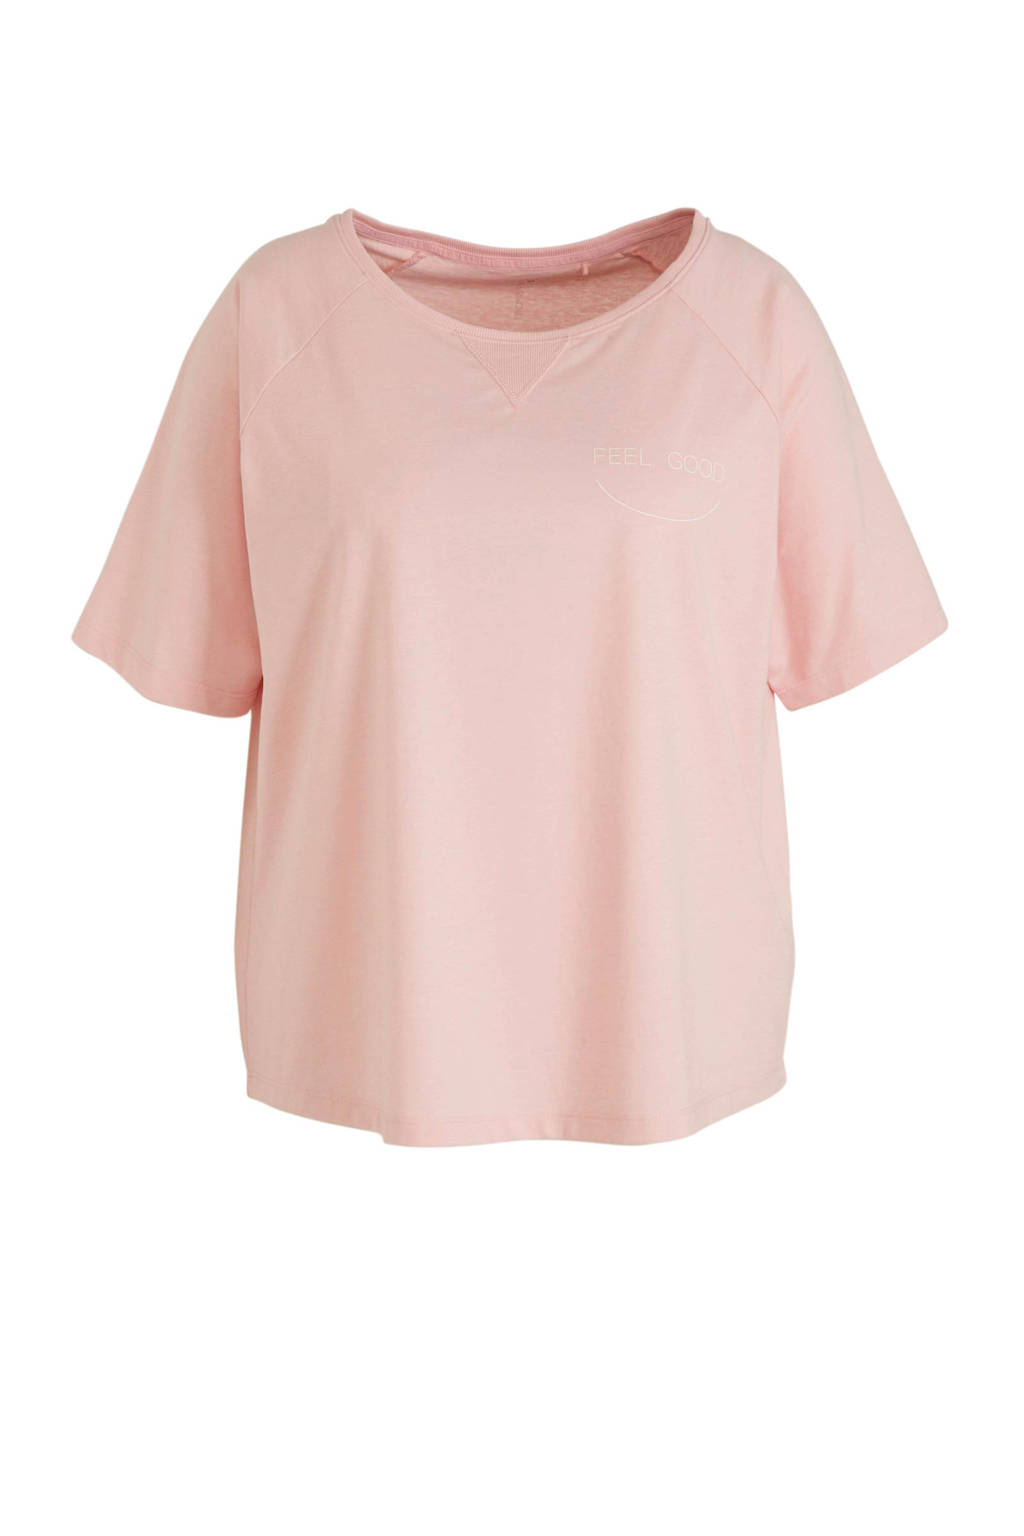 ESPRIT Women Sports Plus Size sport T-shirt roze, Roze